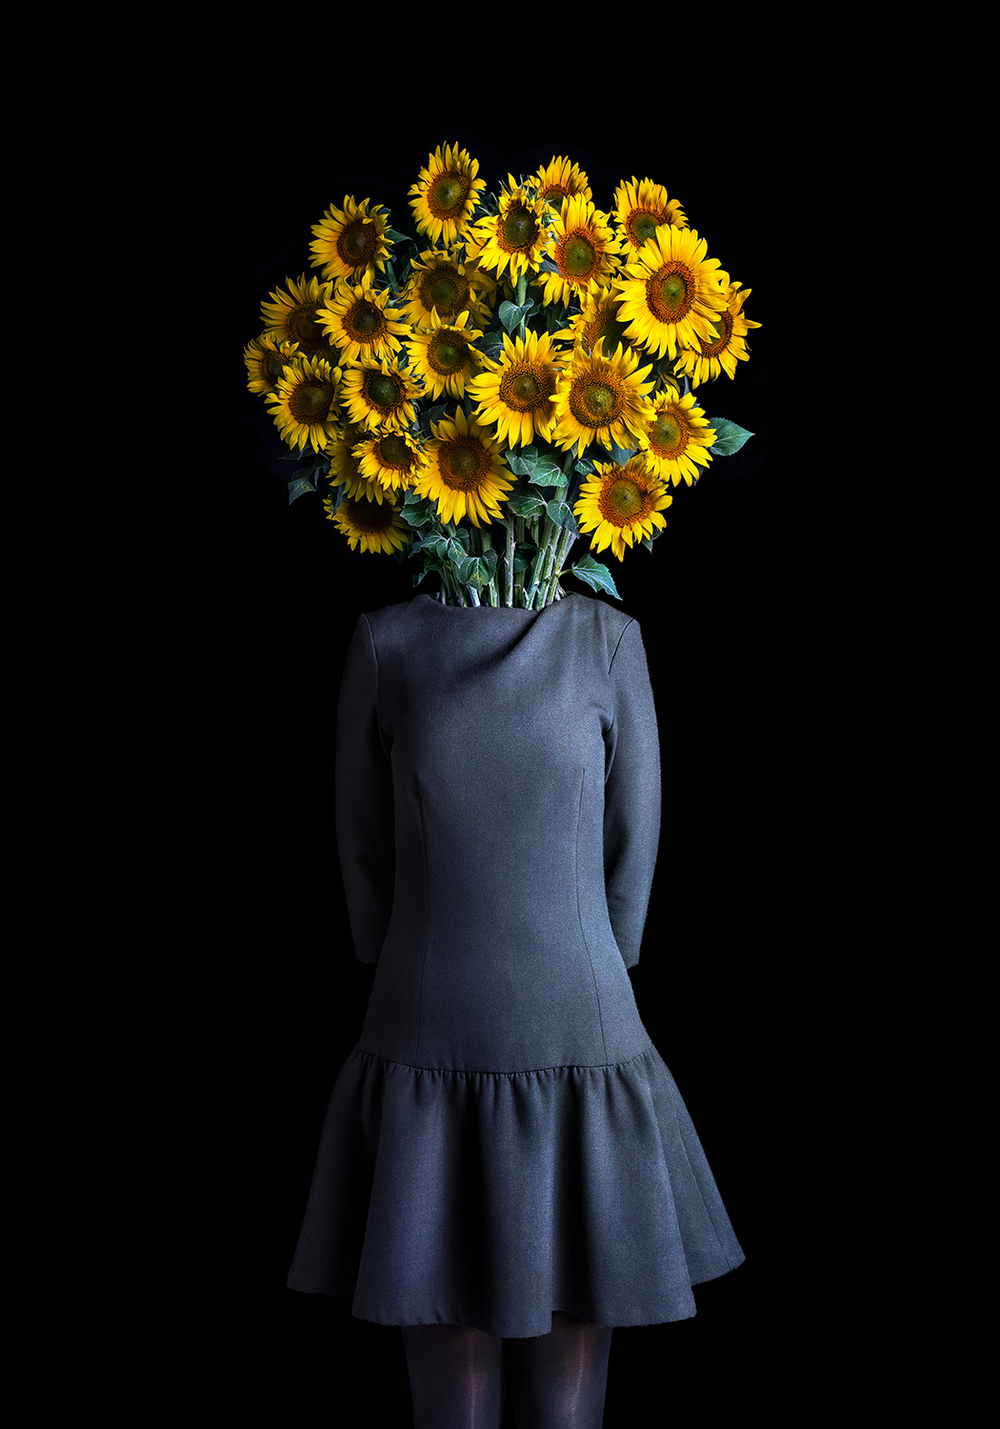 Root Number 30 from the series Root Collection, Miguel Vallinas Prieto